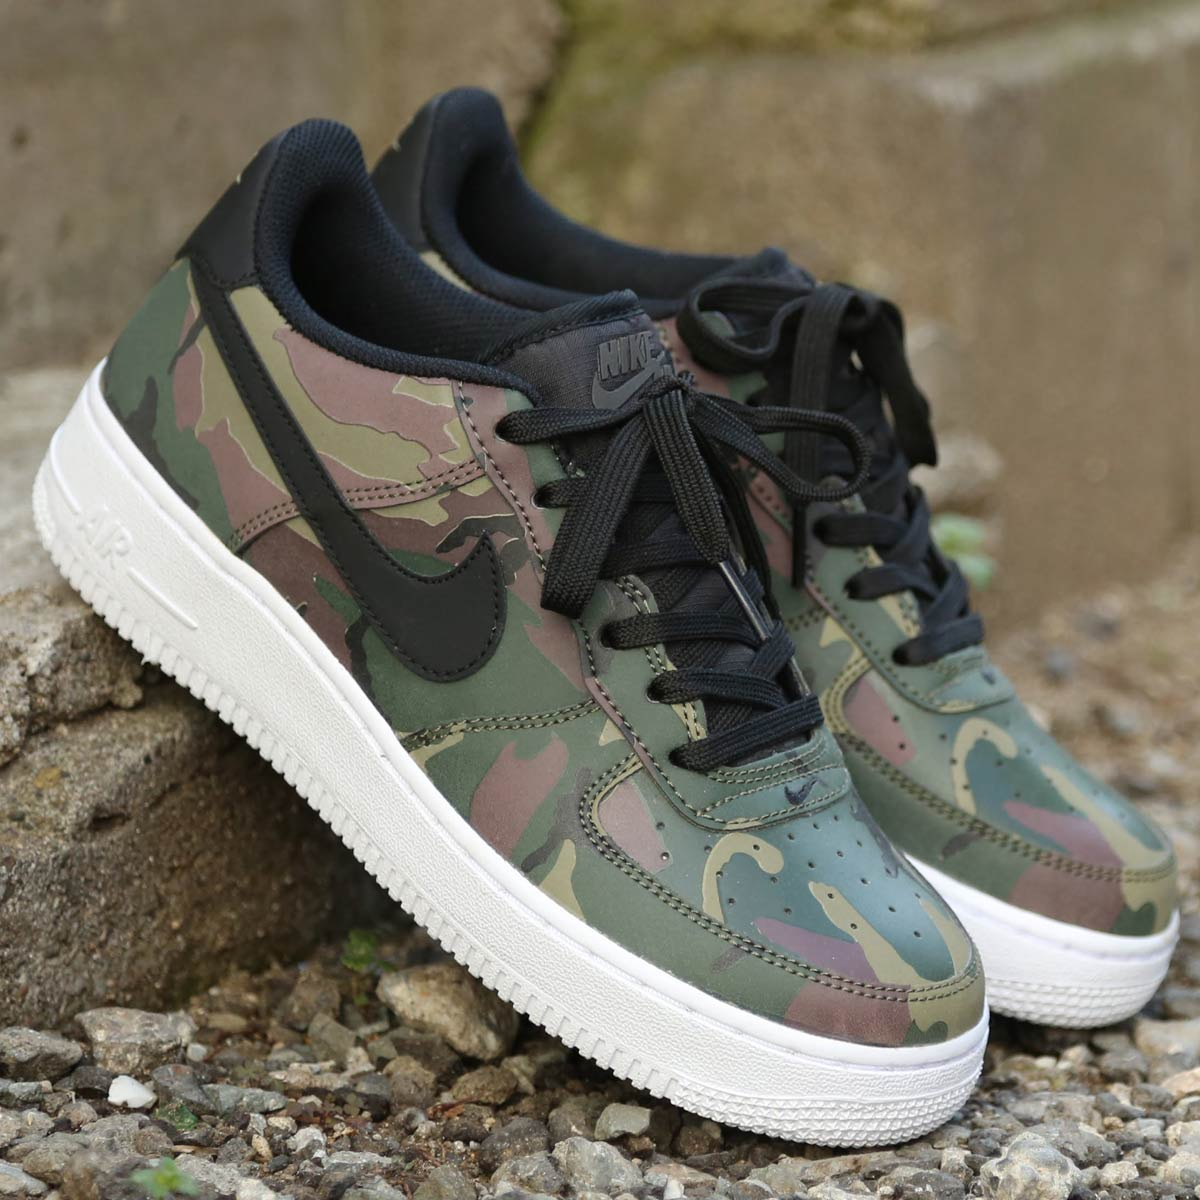 NIKE AIR FORCE 1 LV8 (GS) (ナイキ エア フォース 1 エレベート GS)MEDIUM OLIVE/BLACK-BAROQUE BROWN-SEQUOIA【ガールズサイズ】18SP-S